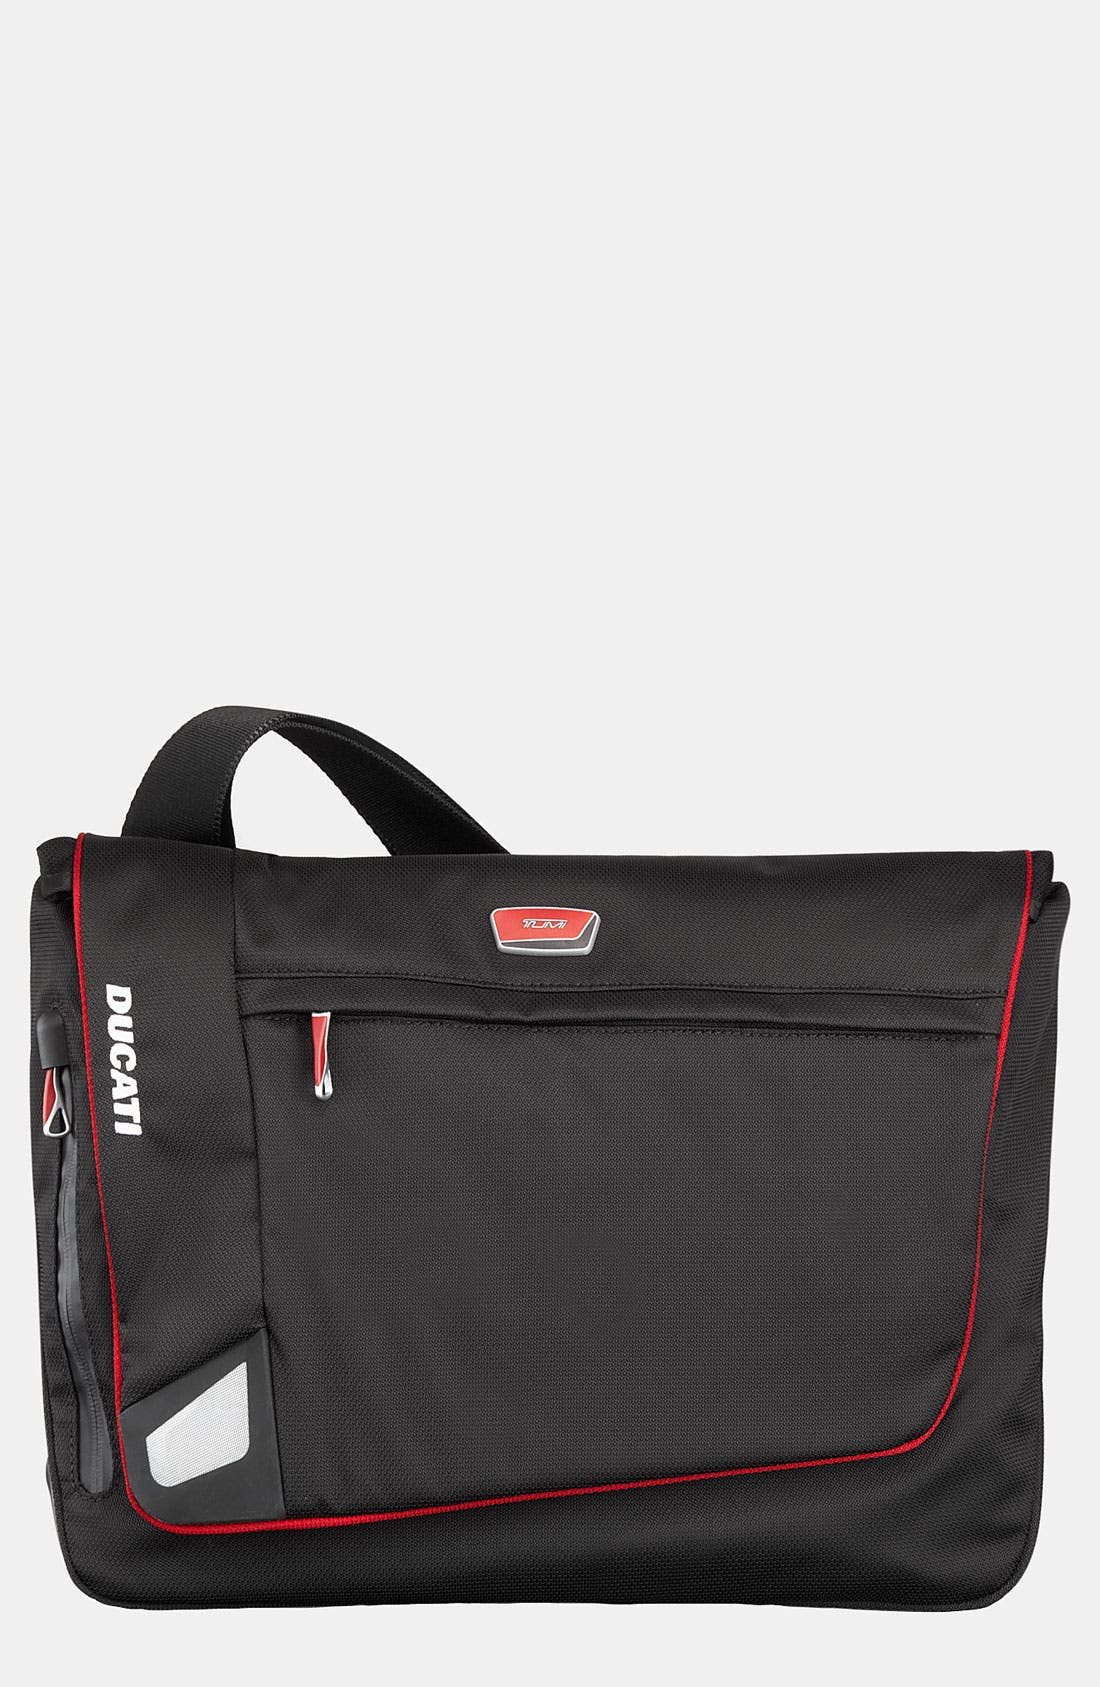 Main Image - Tumi 'Ducati - Multistrada' Laptop Messenger Bag